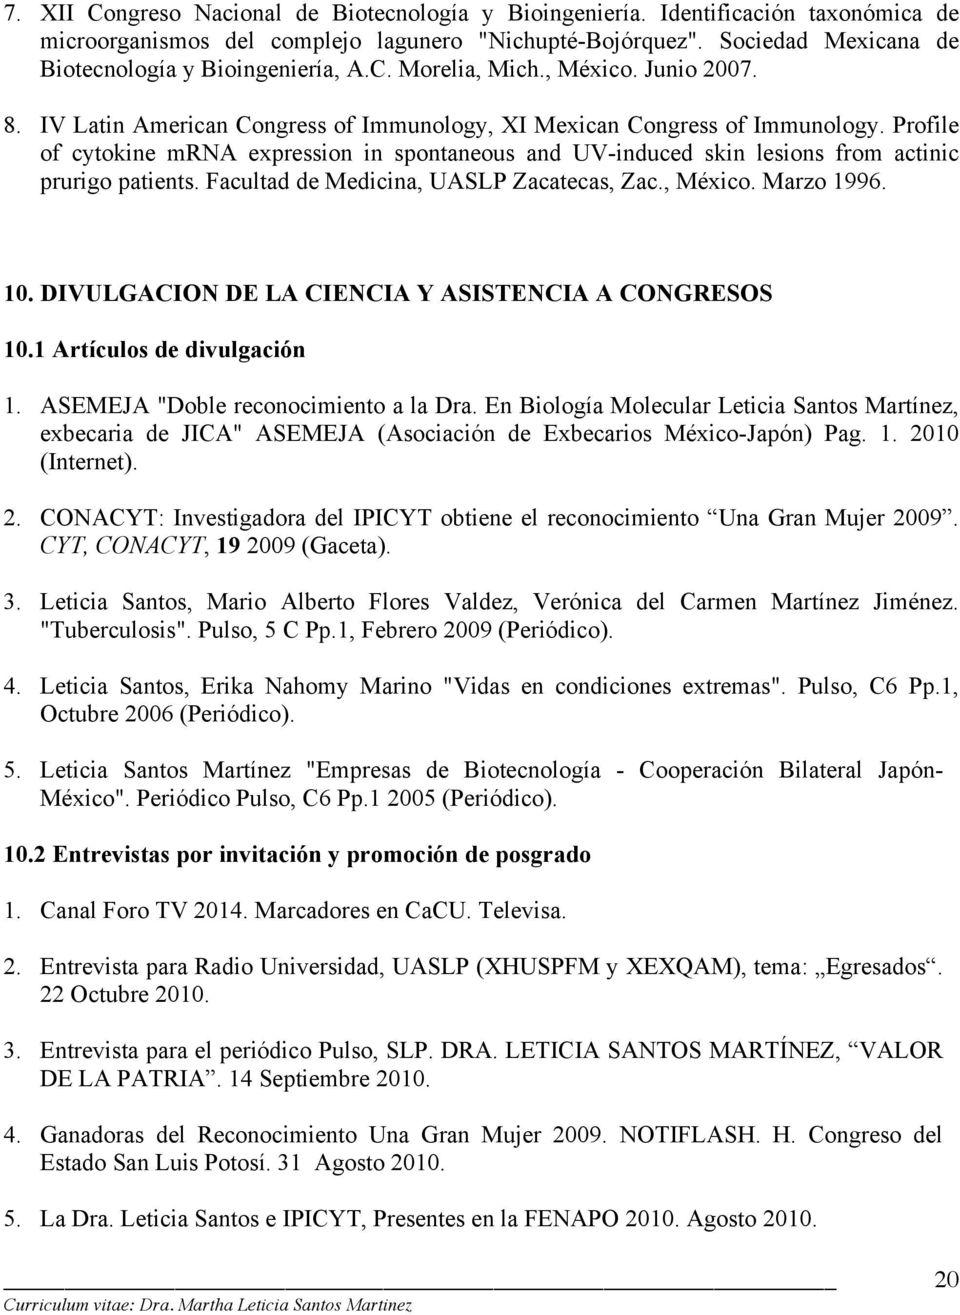 Profile of cytokine mrna expression in spontaneous and UV-induced skin lesions from actinic prurigo patients. Facultad de Medicina, UASLP Zacatecas, Zac., México. Marzo 1996. 10.